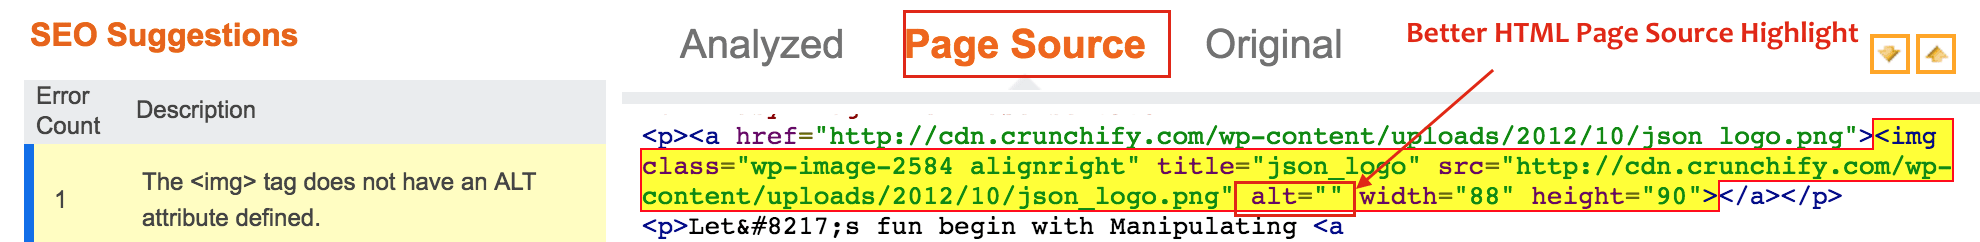 The tag does not have an ALT attribute defined - Better Highlight in Source Code